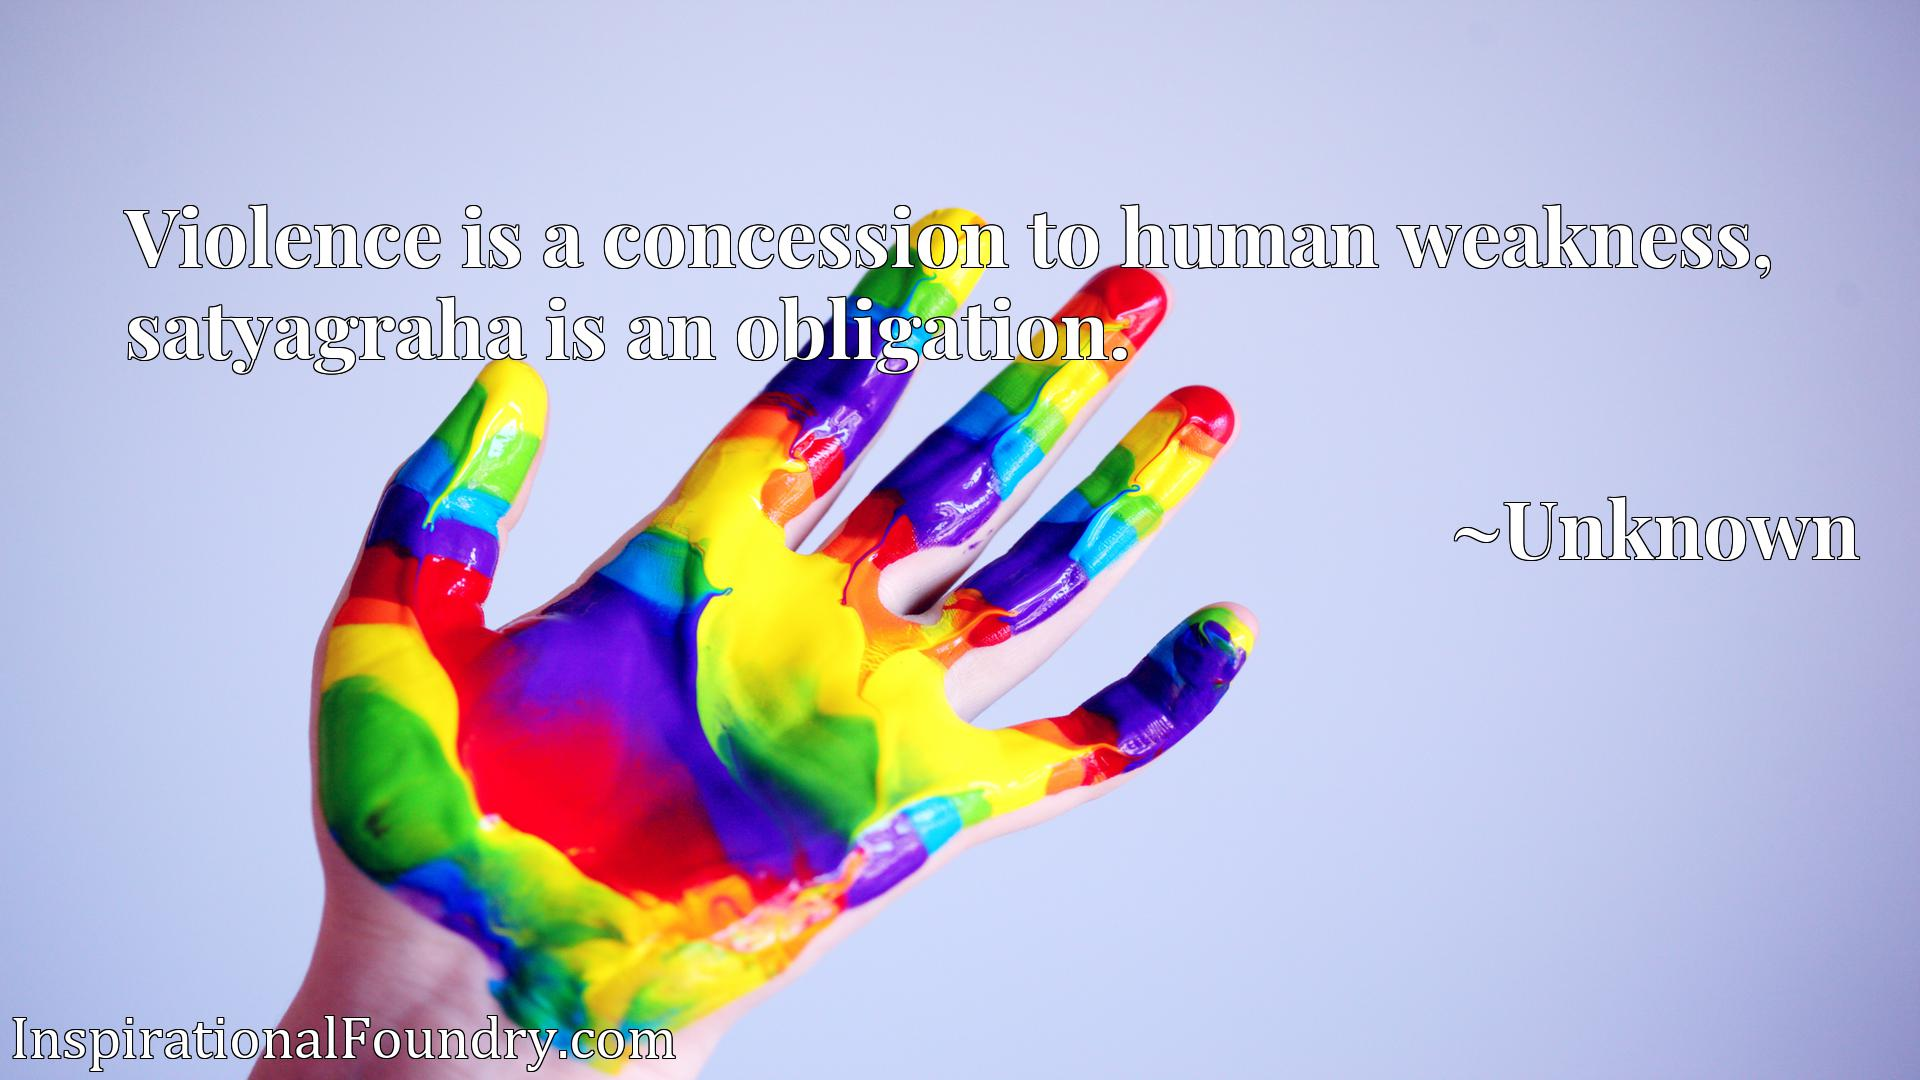 Quote Picture :Violence is a concession to human weakness, satyagraha is an obligation.